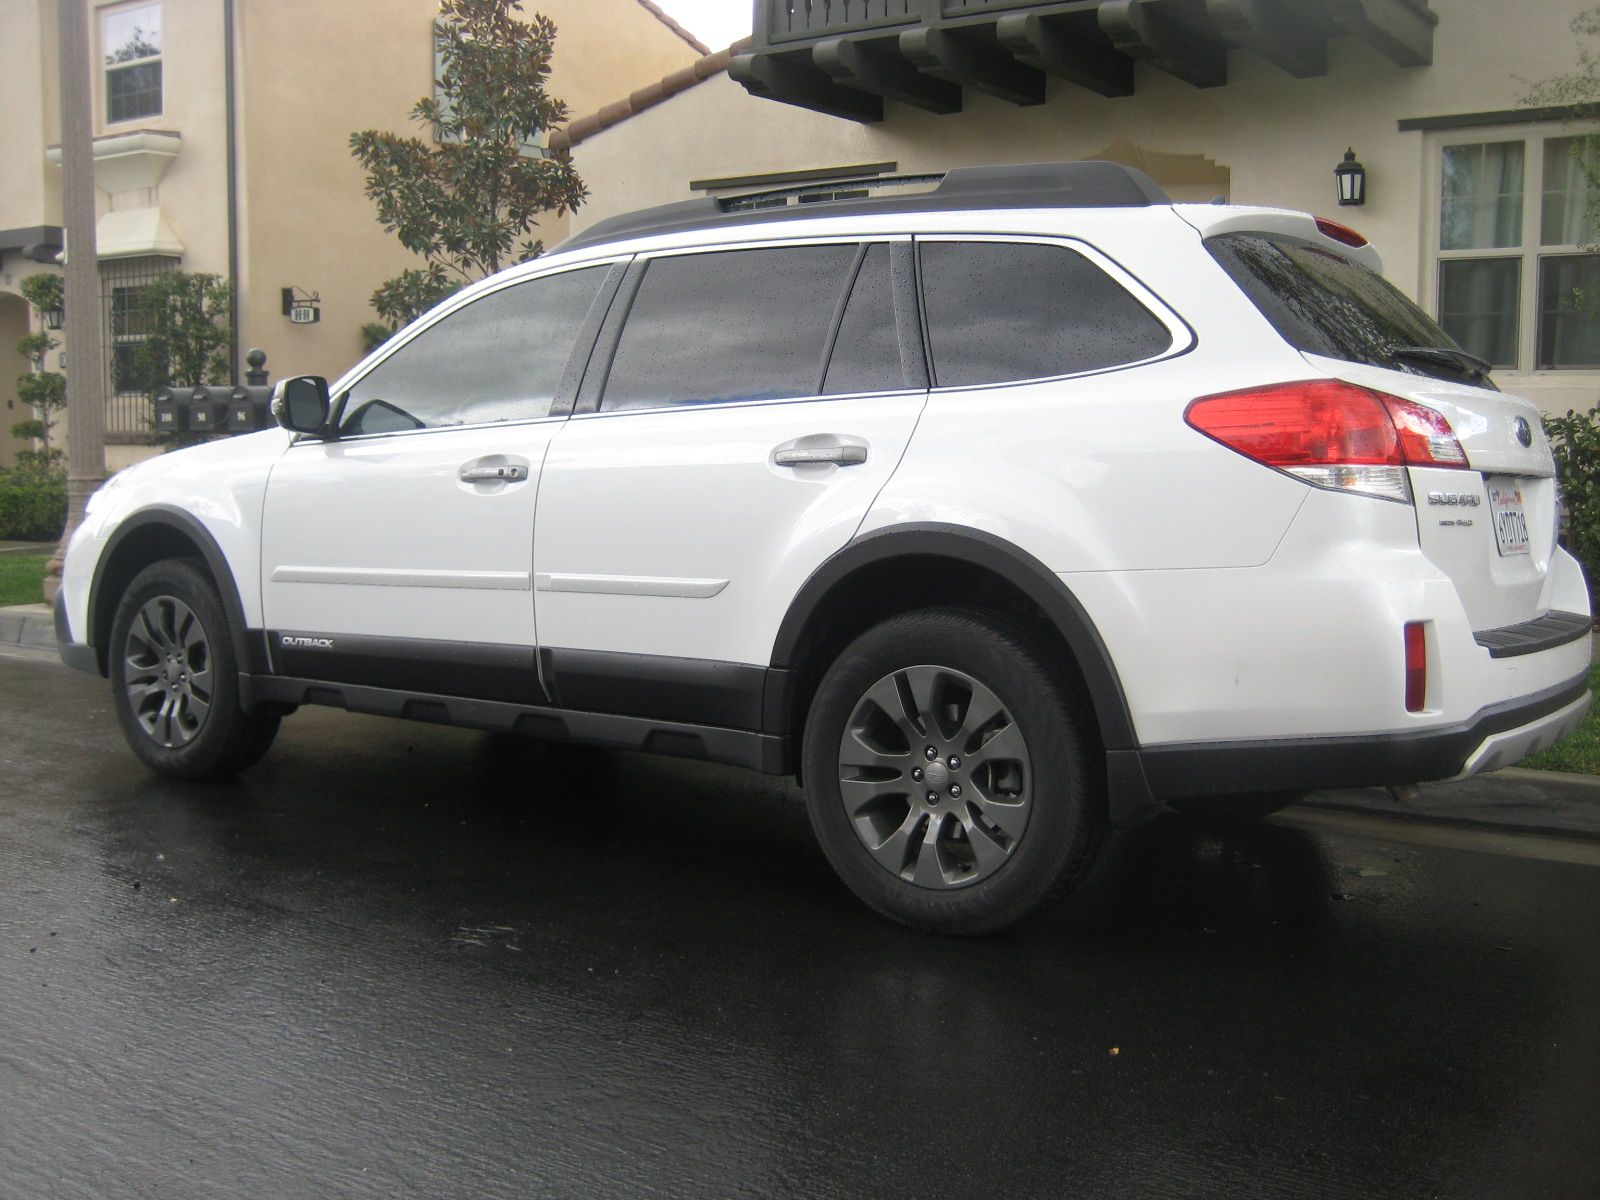 2015 Outback Specs Options Colors Prices Photos And More Subaru Outback Outback Subaru